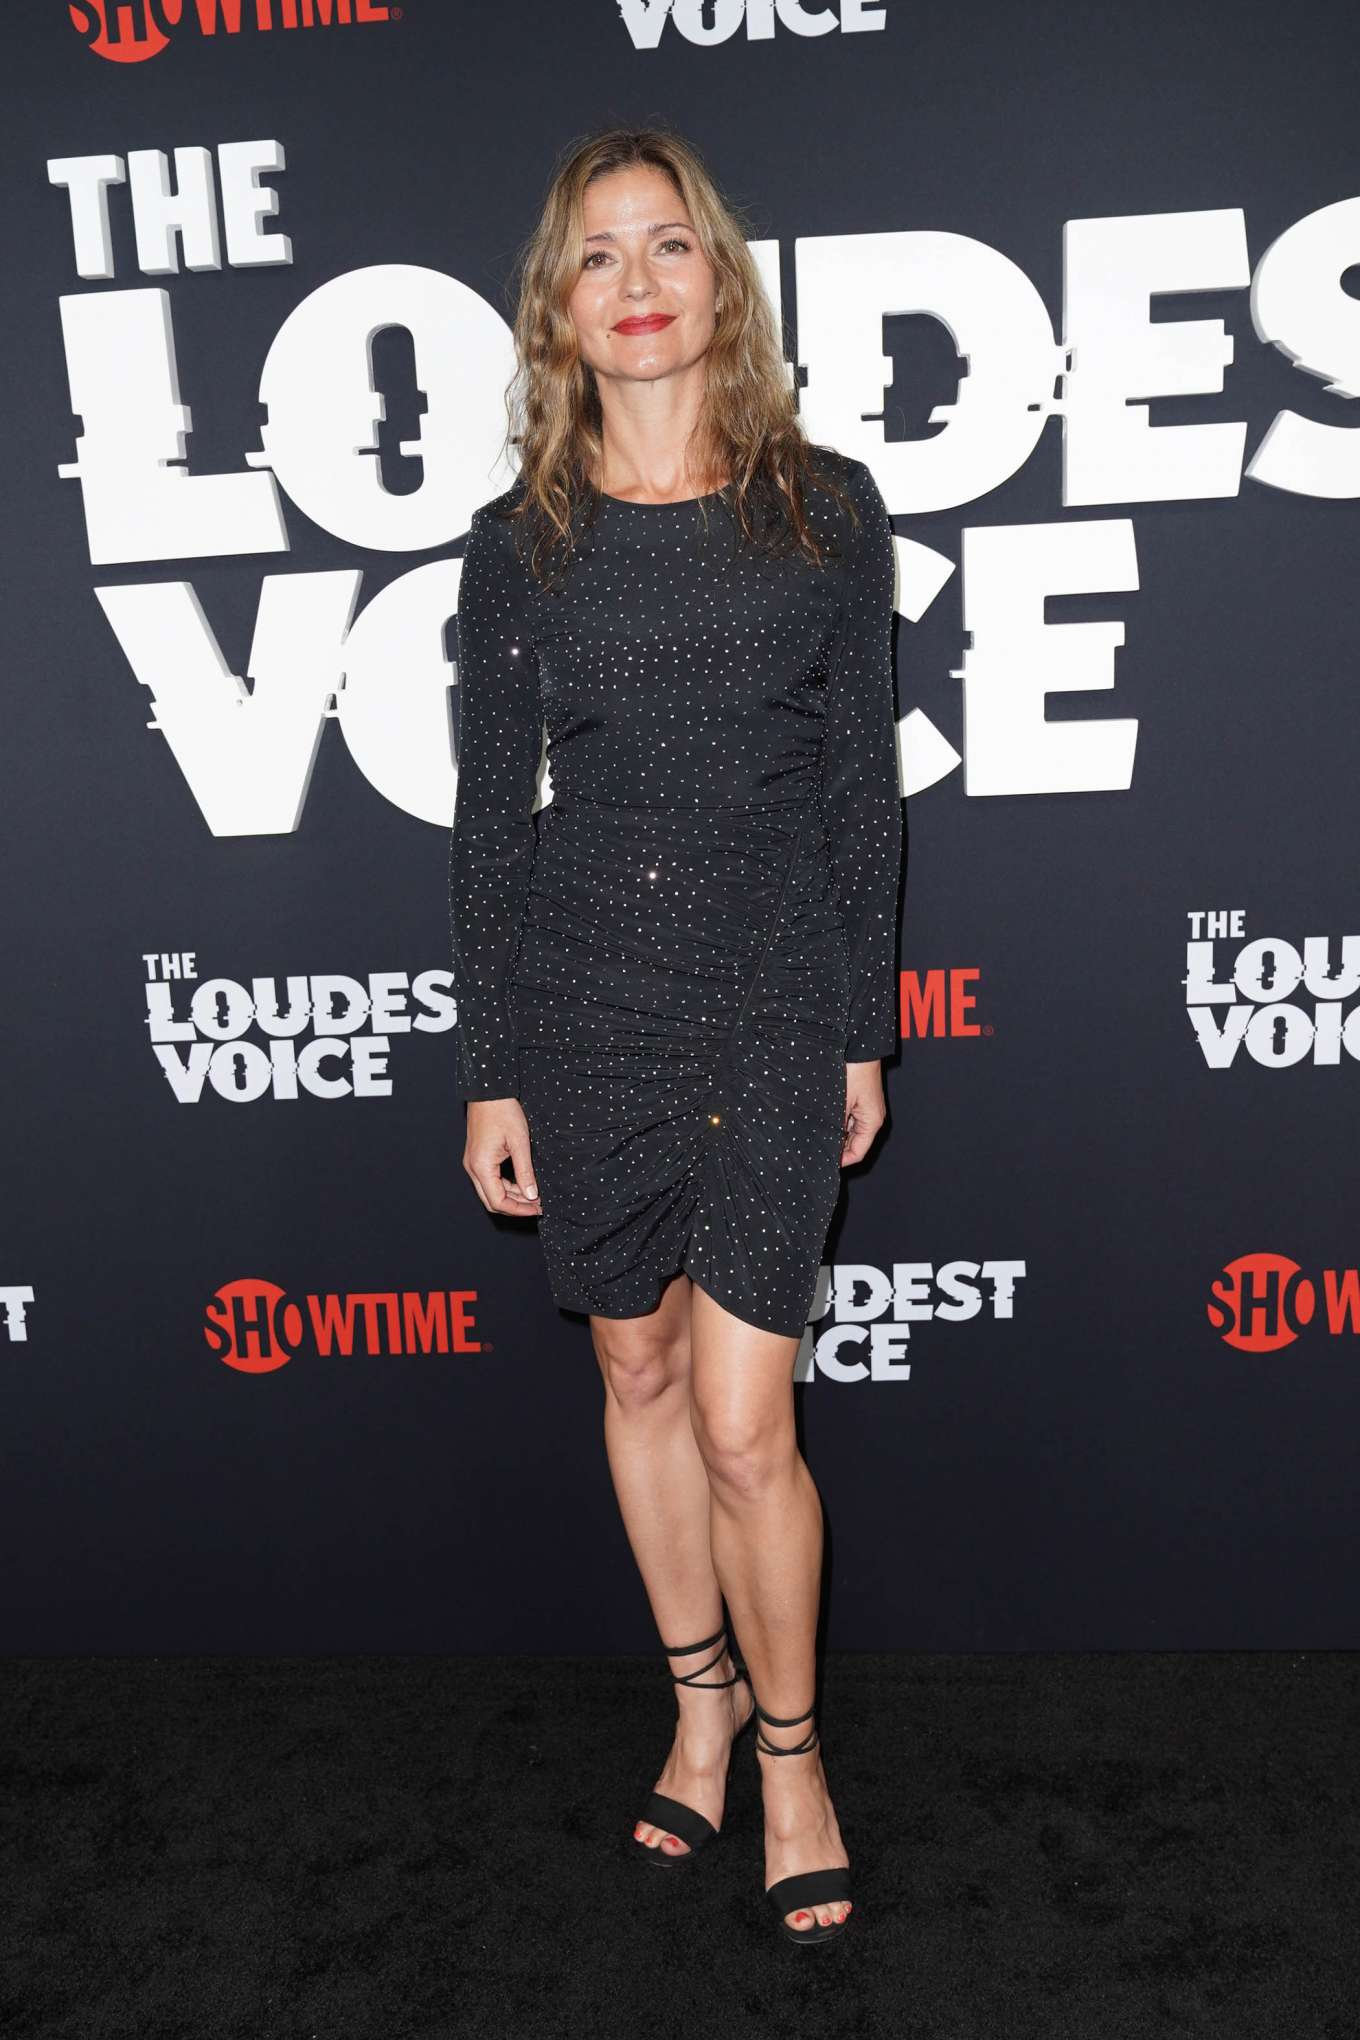 Jill Hennessy 2019 : Jill Hennessy: The Loudest Voice Premiere in New York-02